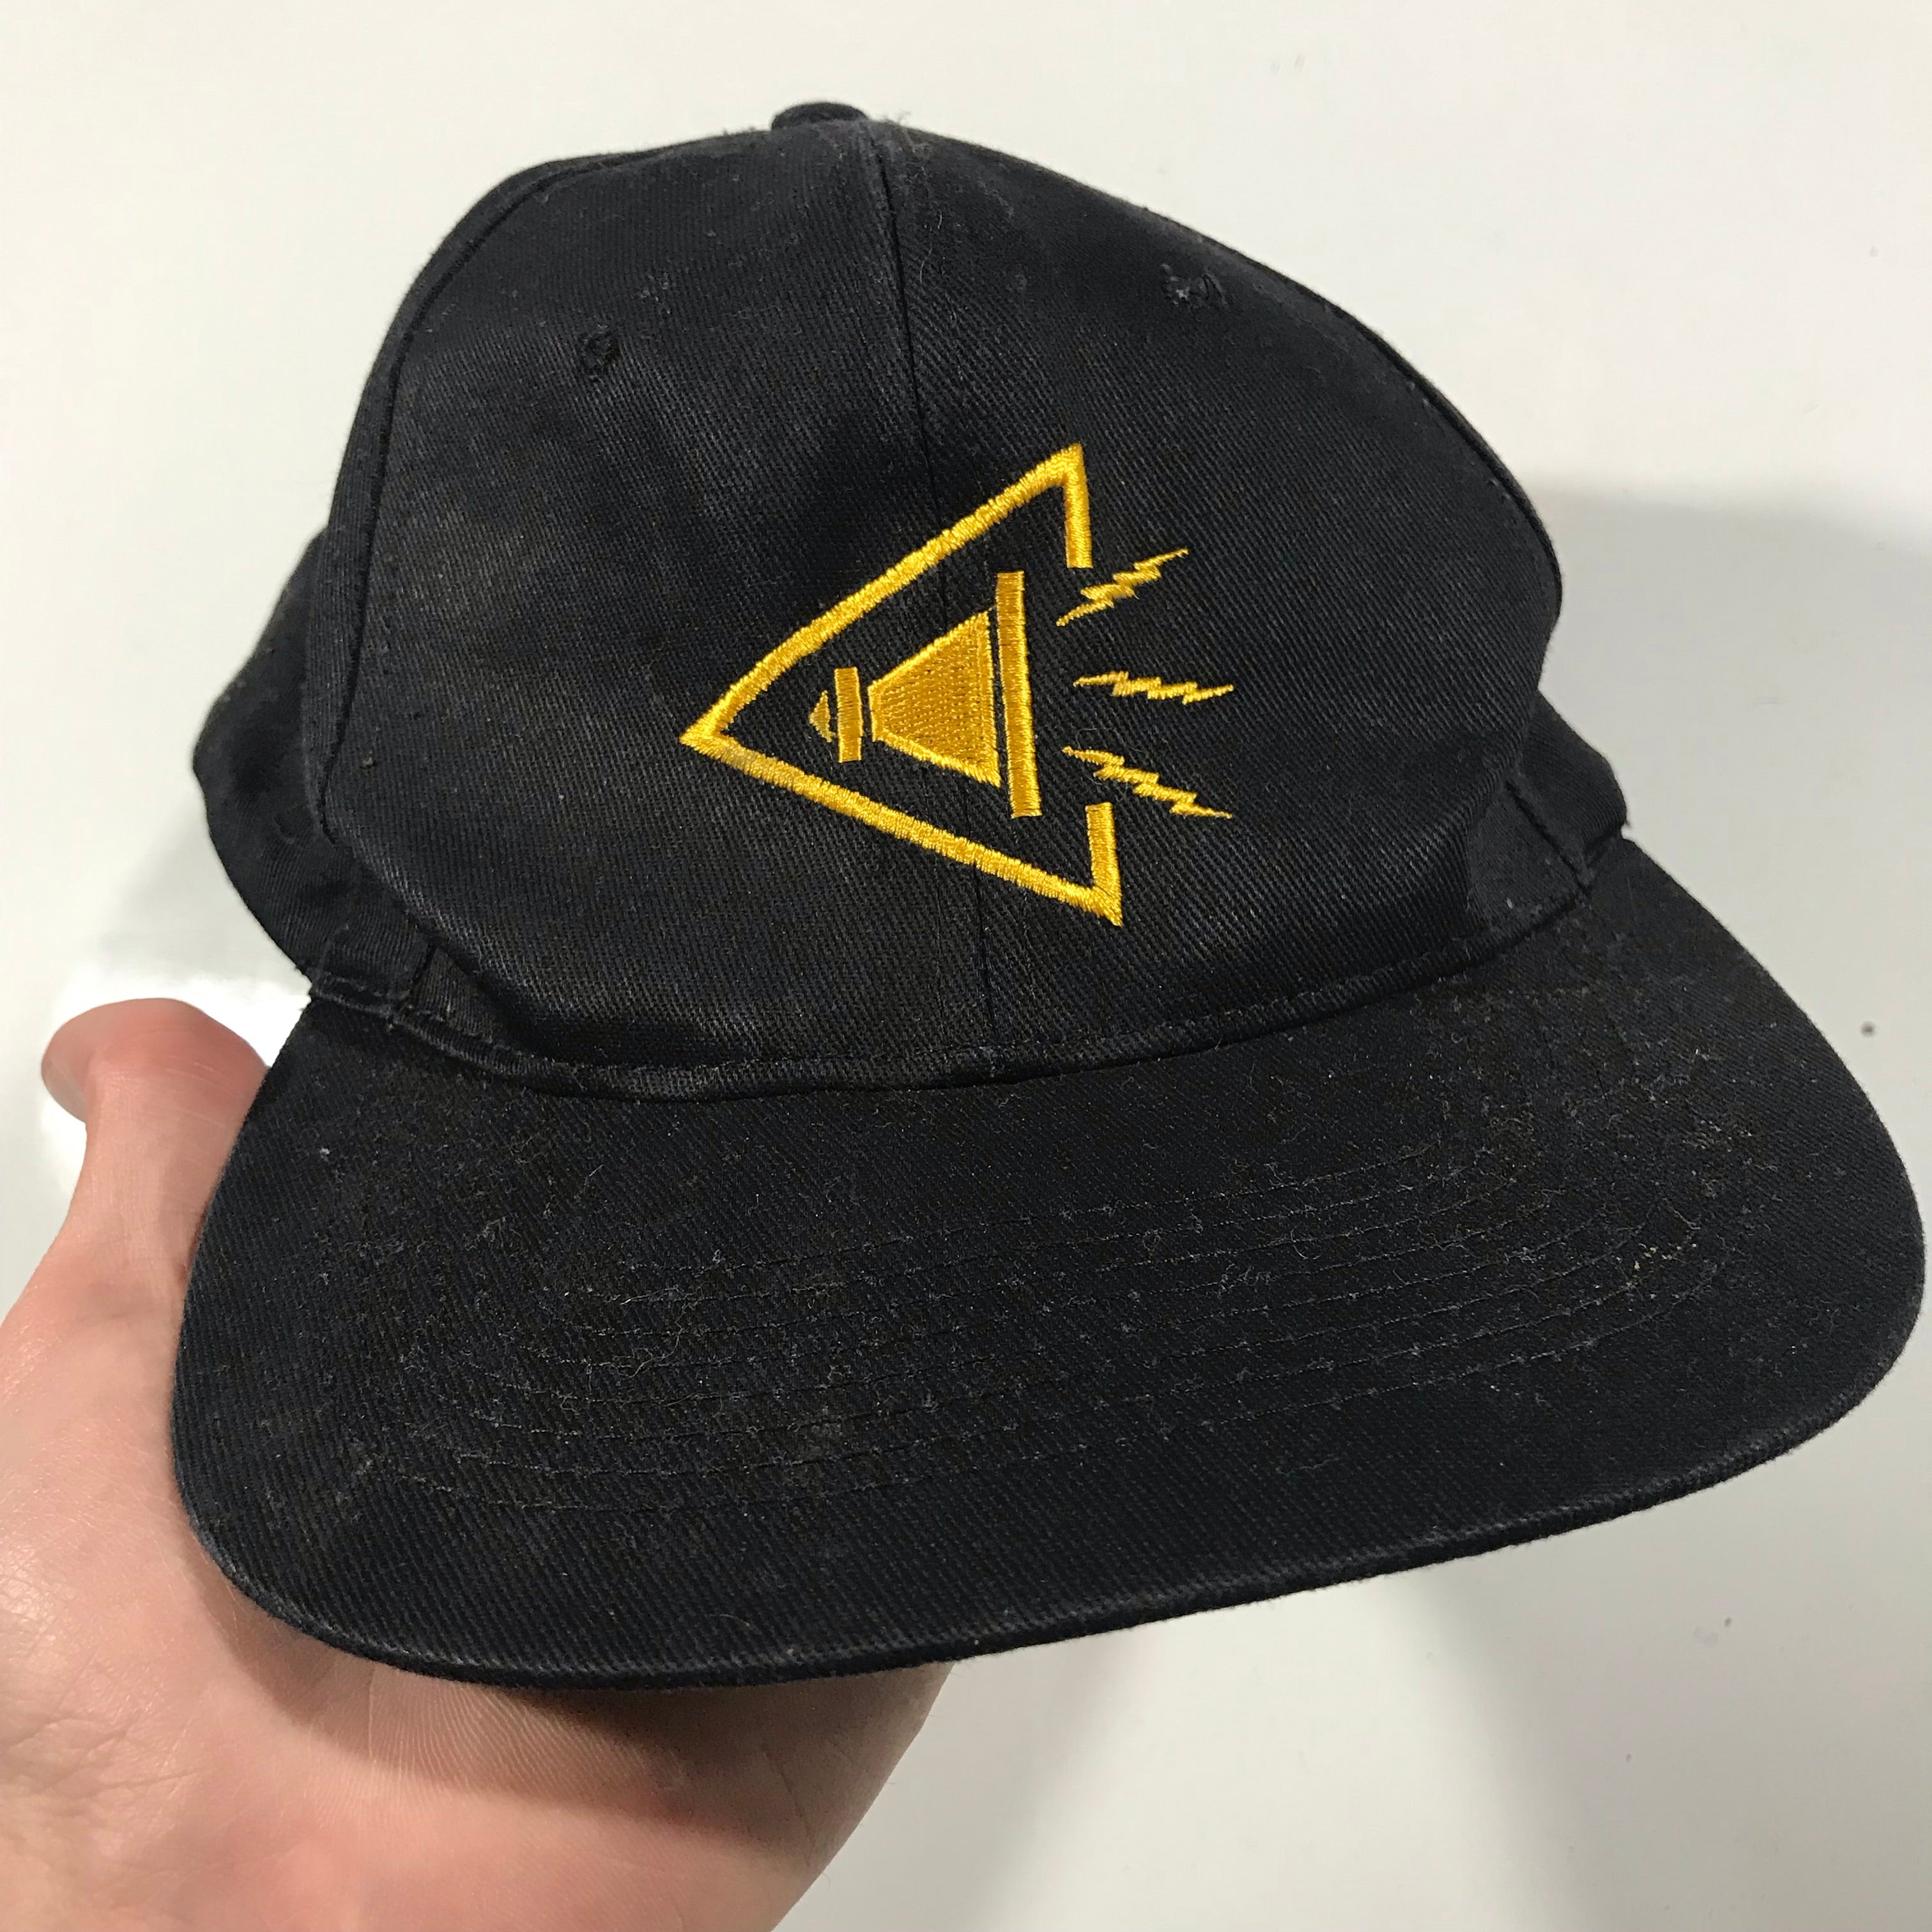 Anthrax band hat